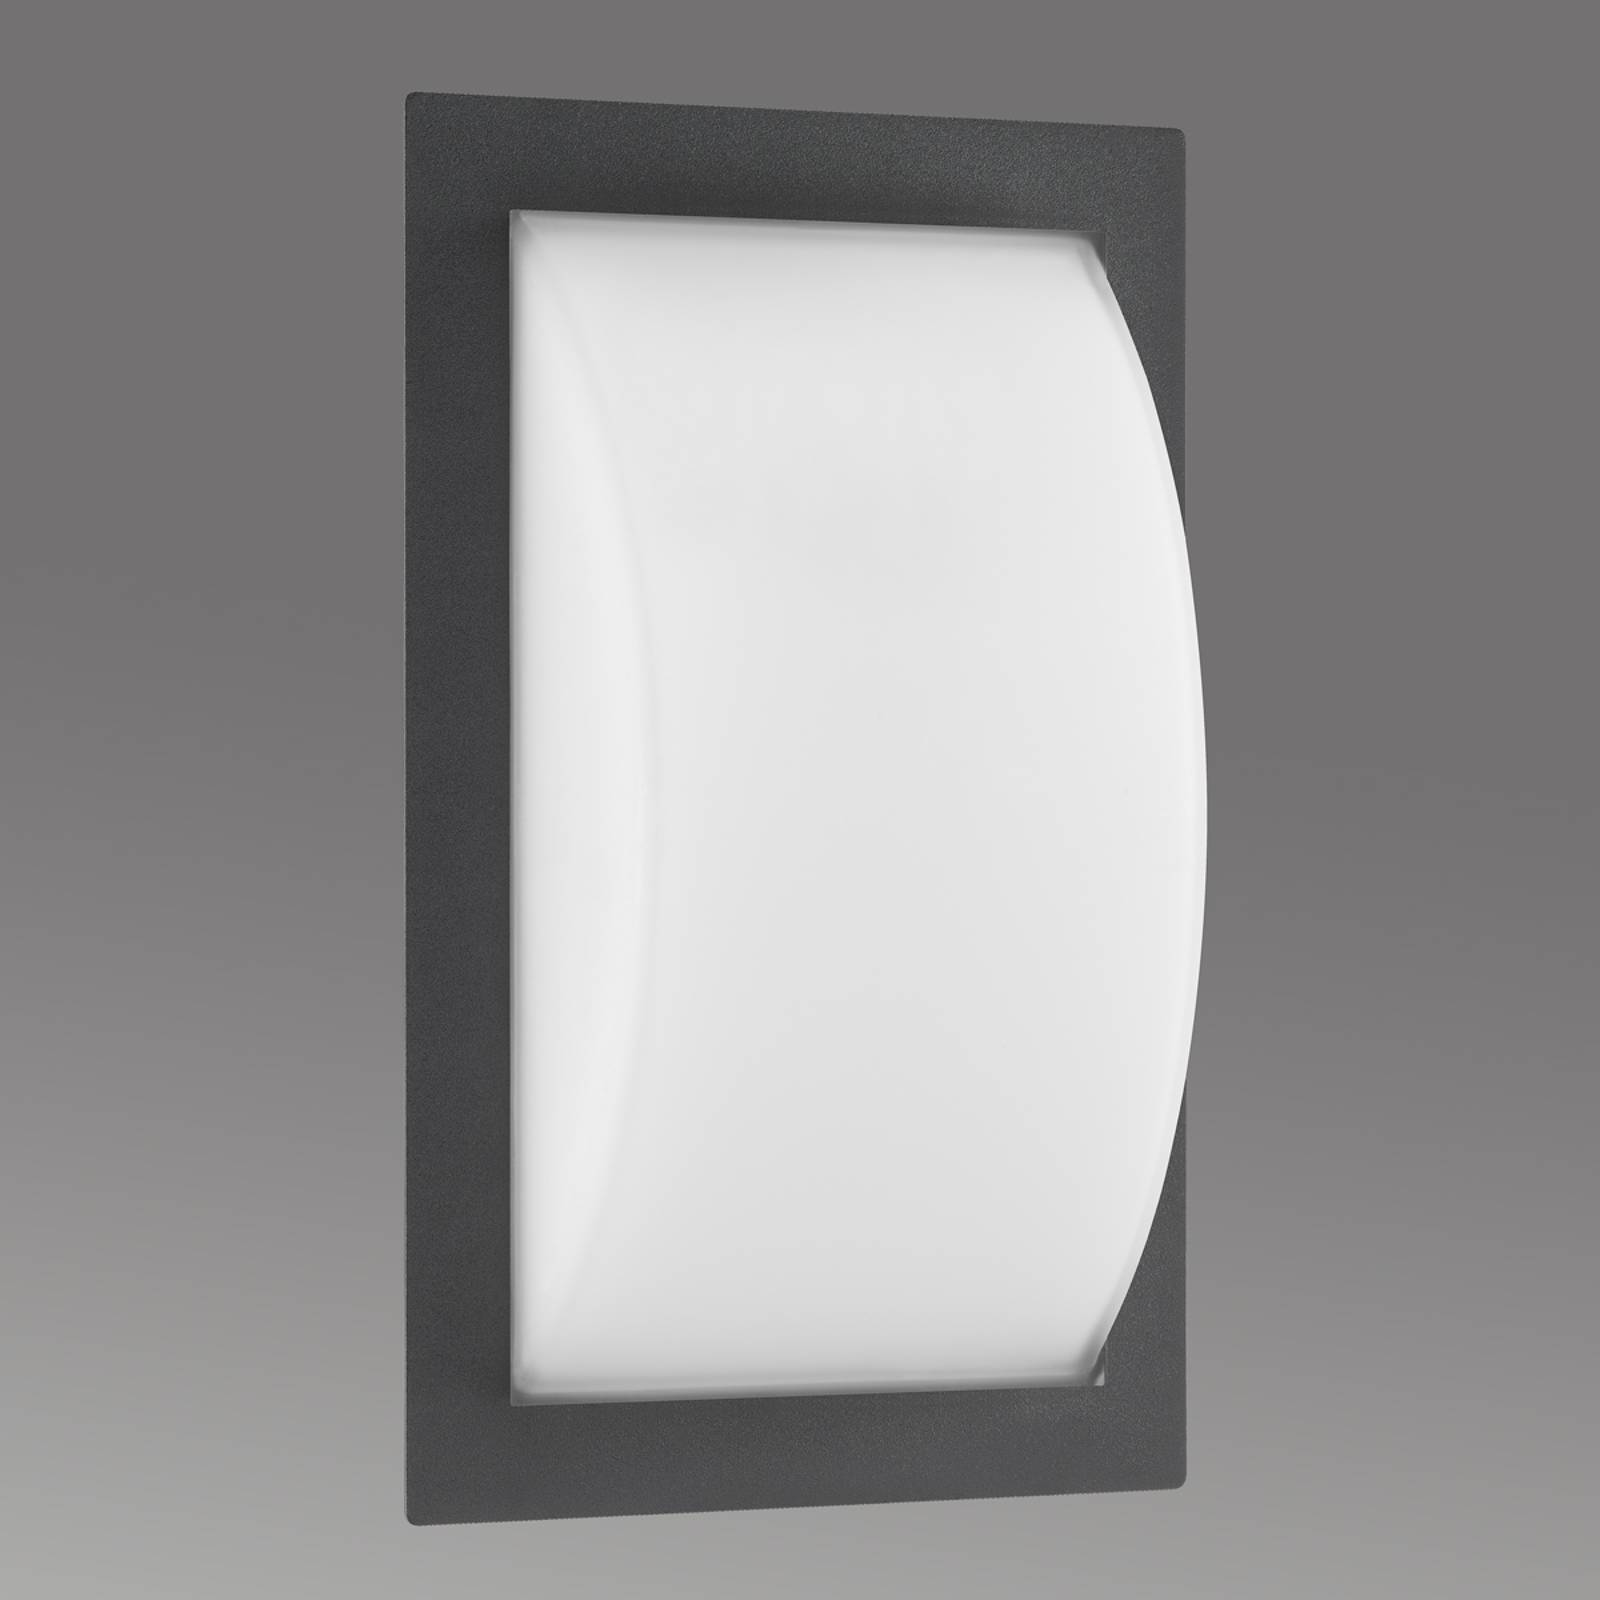 Bulbous outdoor wall light Ivett from LCD